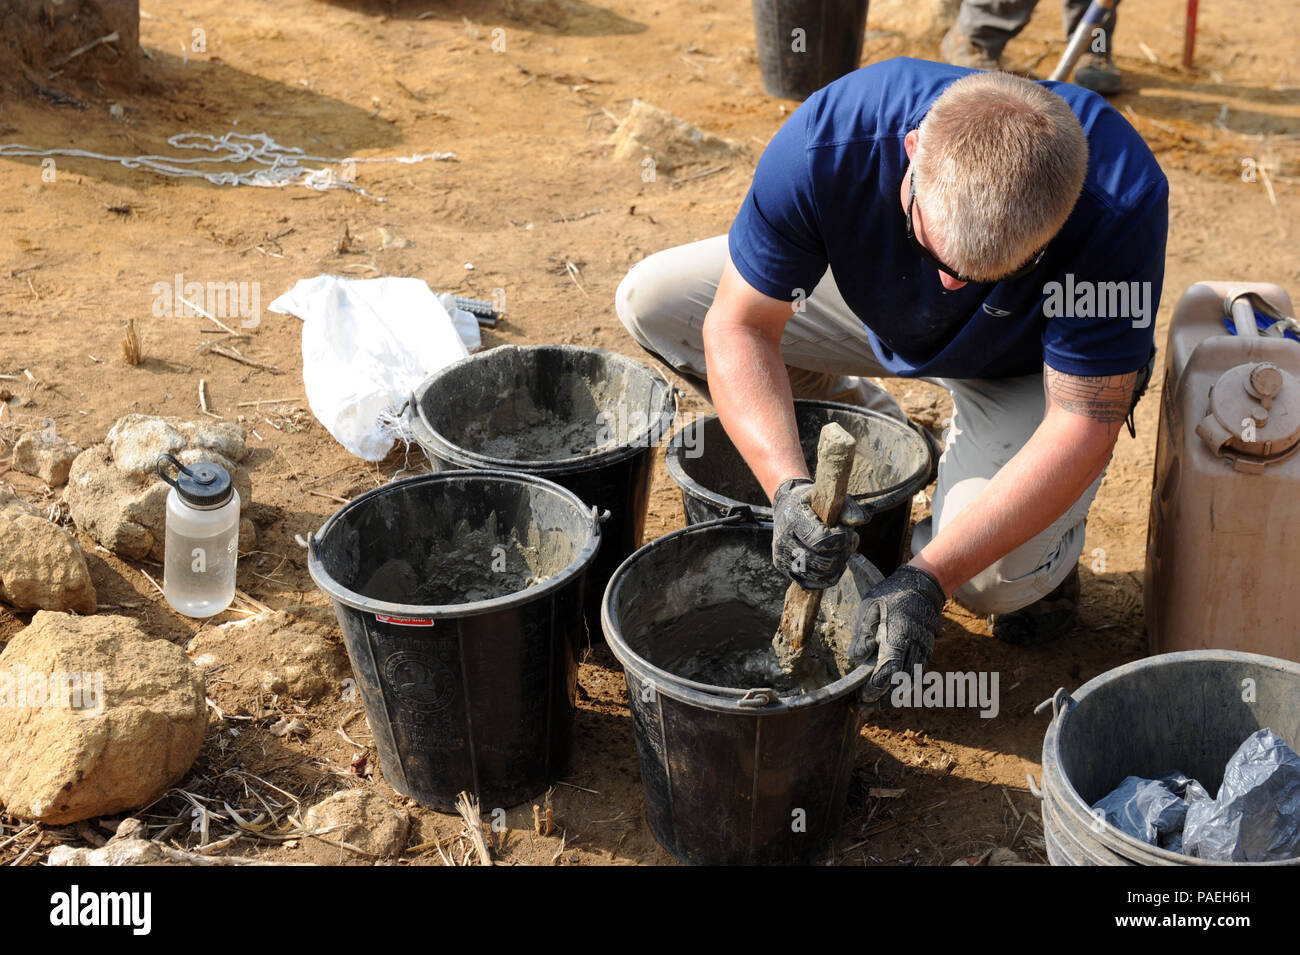 U.S. Army Sgt. 1st Class Patrick Adams, team sergeant with the Defense POW/MIA Accounting Agency (DPAA) mixes cement for a site DATUM in Xiangkhoang Province, Lao People's Democratic Republic, Mar. 31, 2016. Members of the DPAA deployed to the area in hopes of recovering the remains of a pilot unaccounted for during the Vietnam War era. The mission of the DPAA is to provide the fullest possible accounting for our missing personnel to their families and the nation. (DoD photo by Staff Sgt. Jocelyn Ford, USAF/RELEASED) - Stock Image